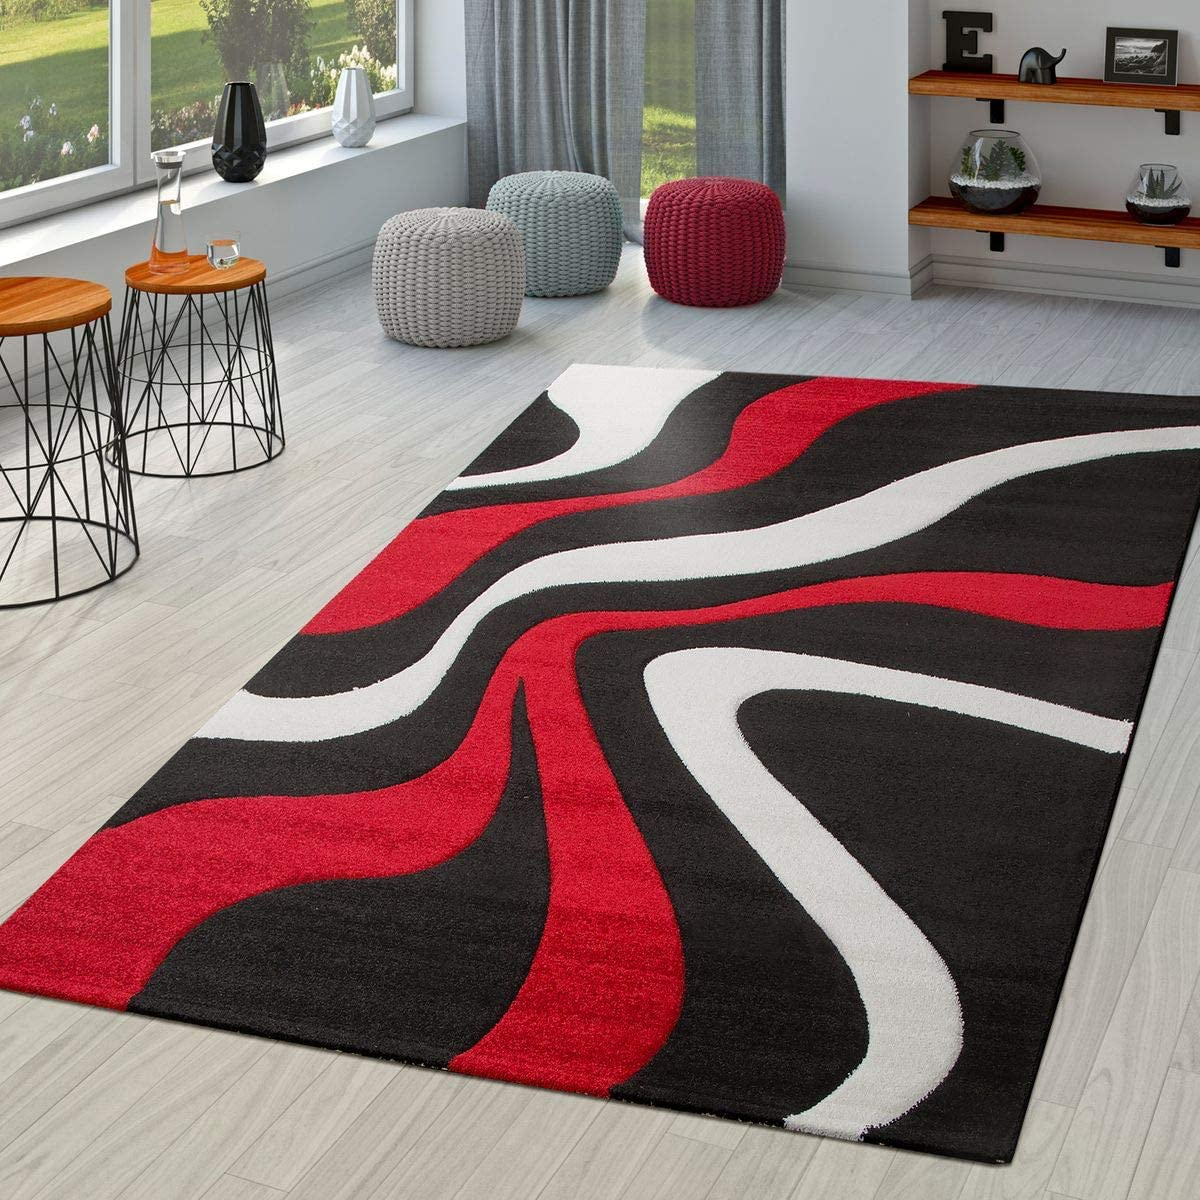 Tt Home Rug Red Black White Living Room Rug Modern With Contour Cut Polypropylene White 120x170 Cm Amazon Co Uk Kitchen Home